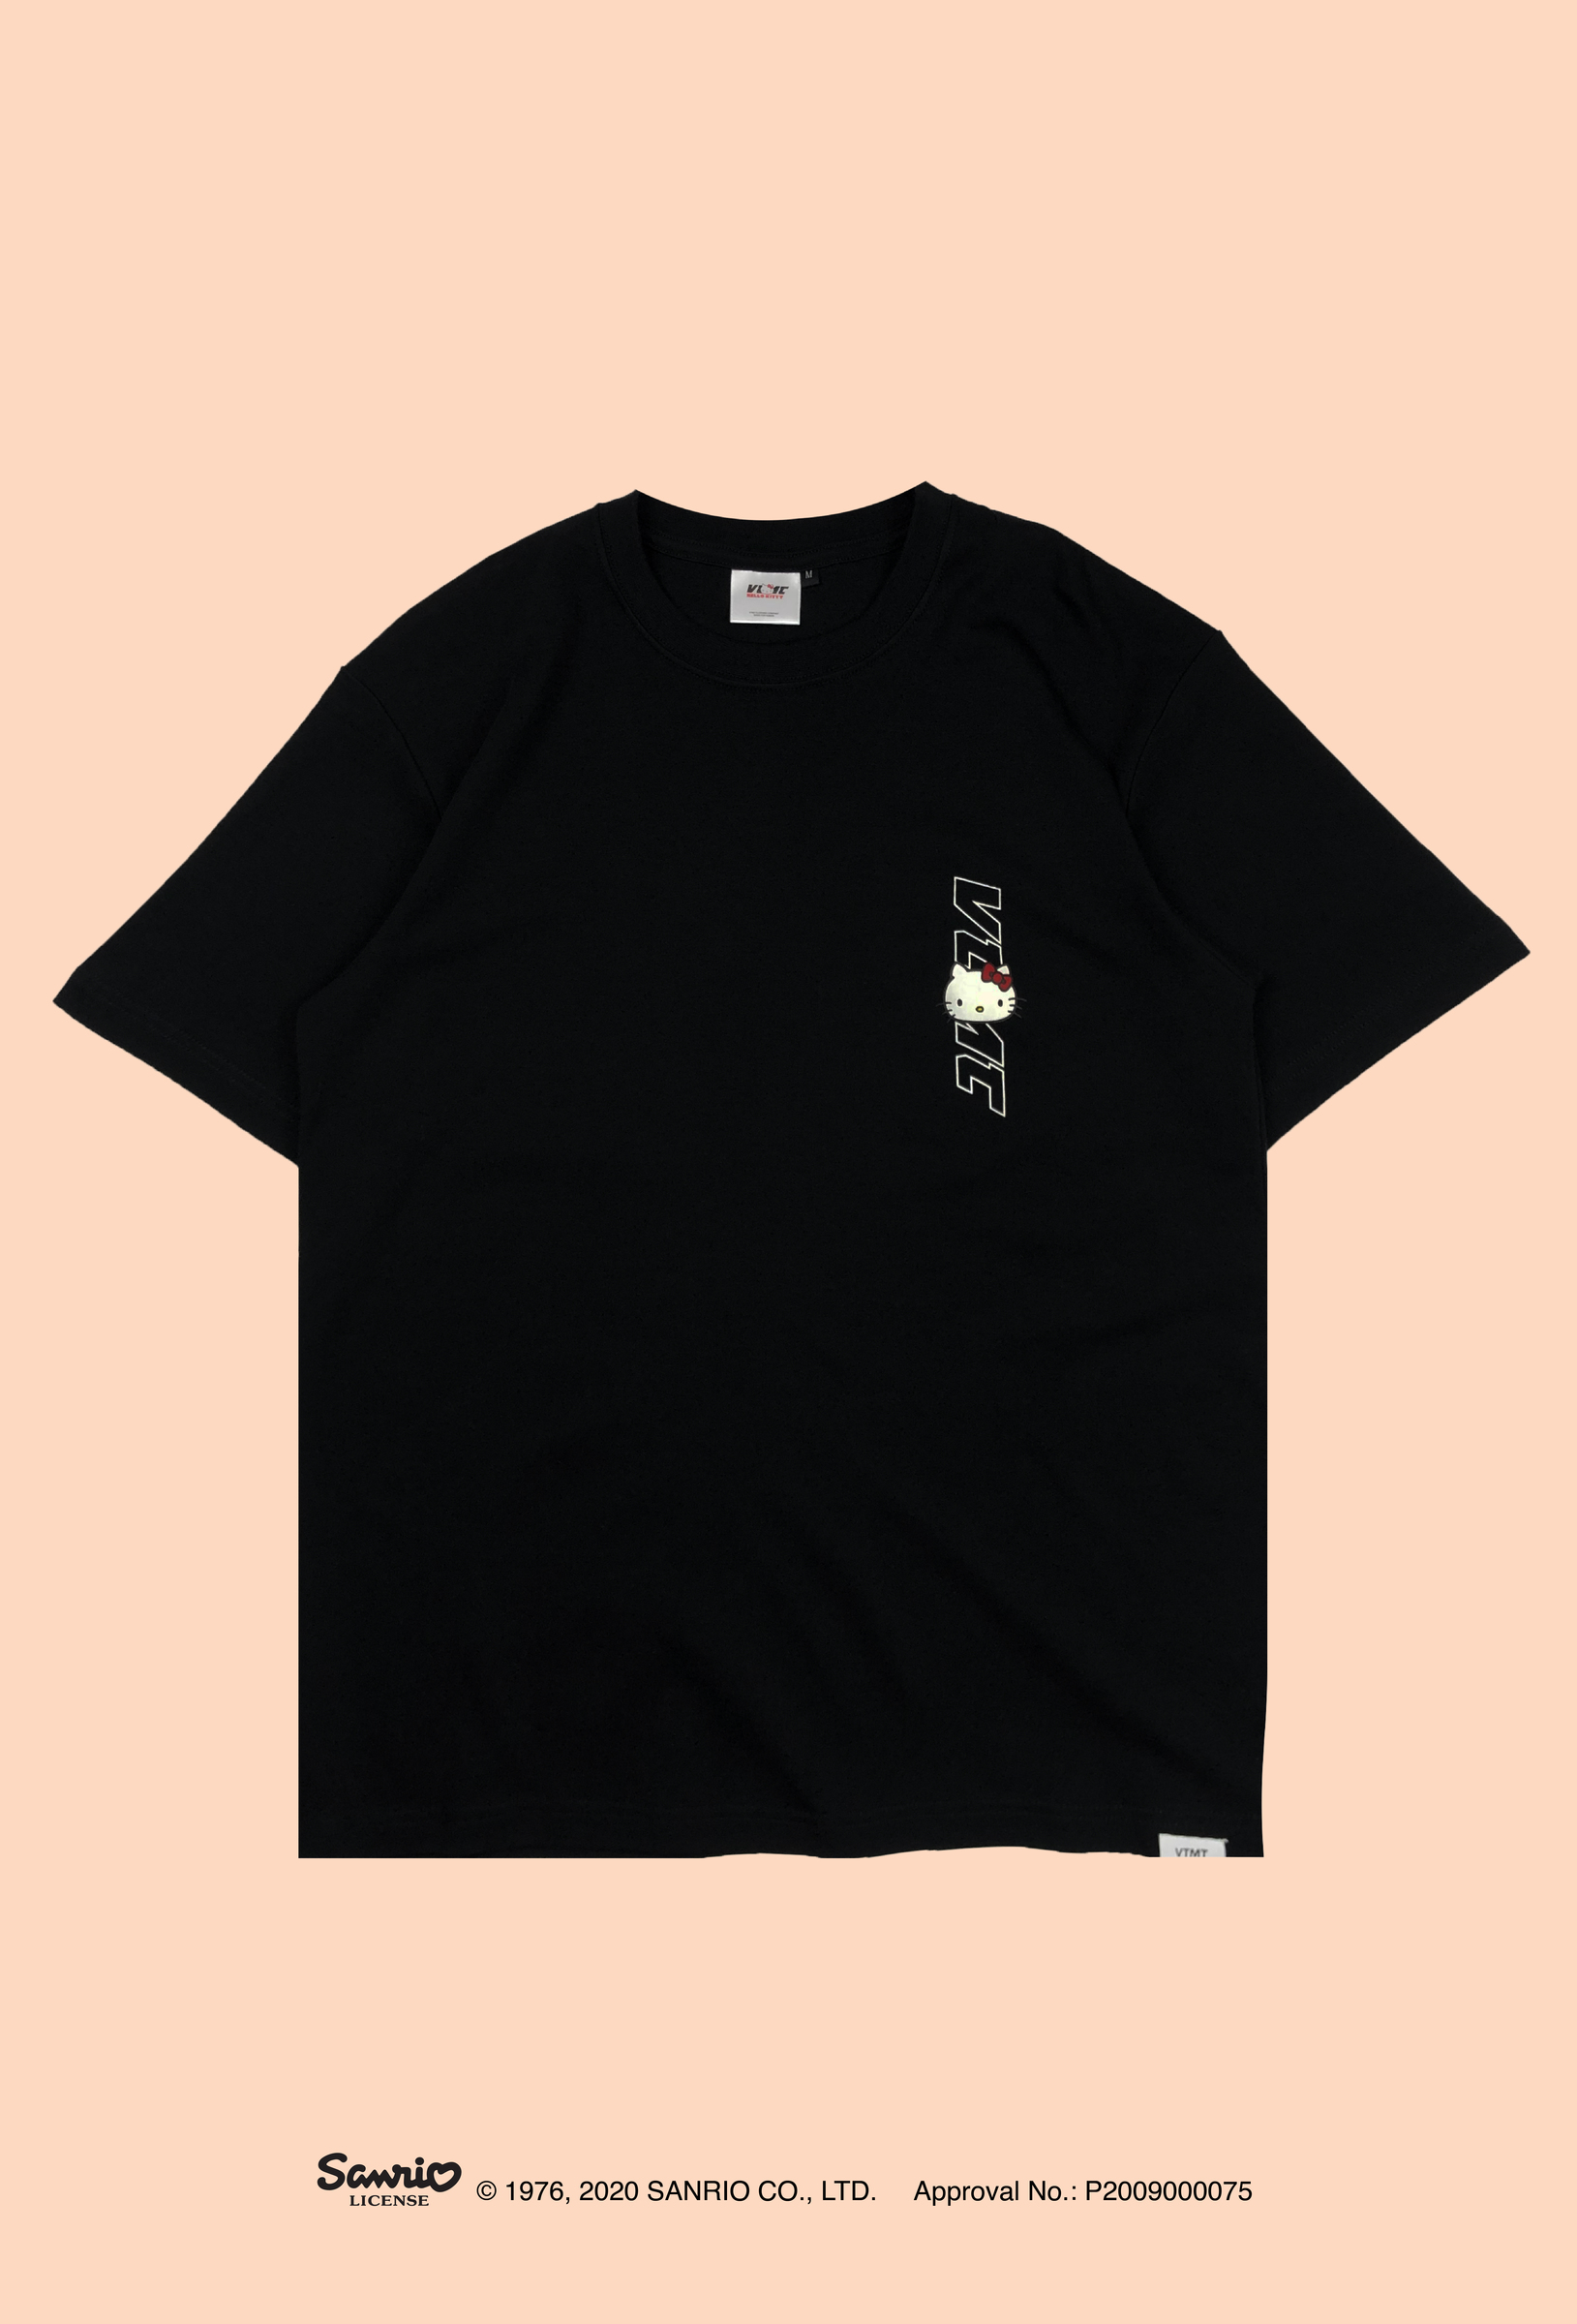 Milk Bottle Tee black front-01.jpg